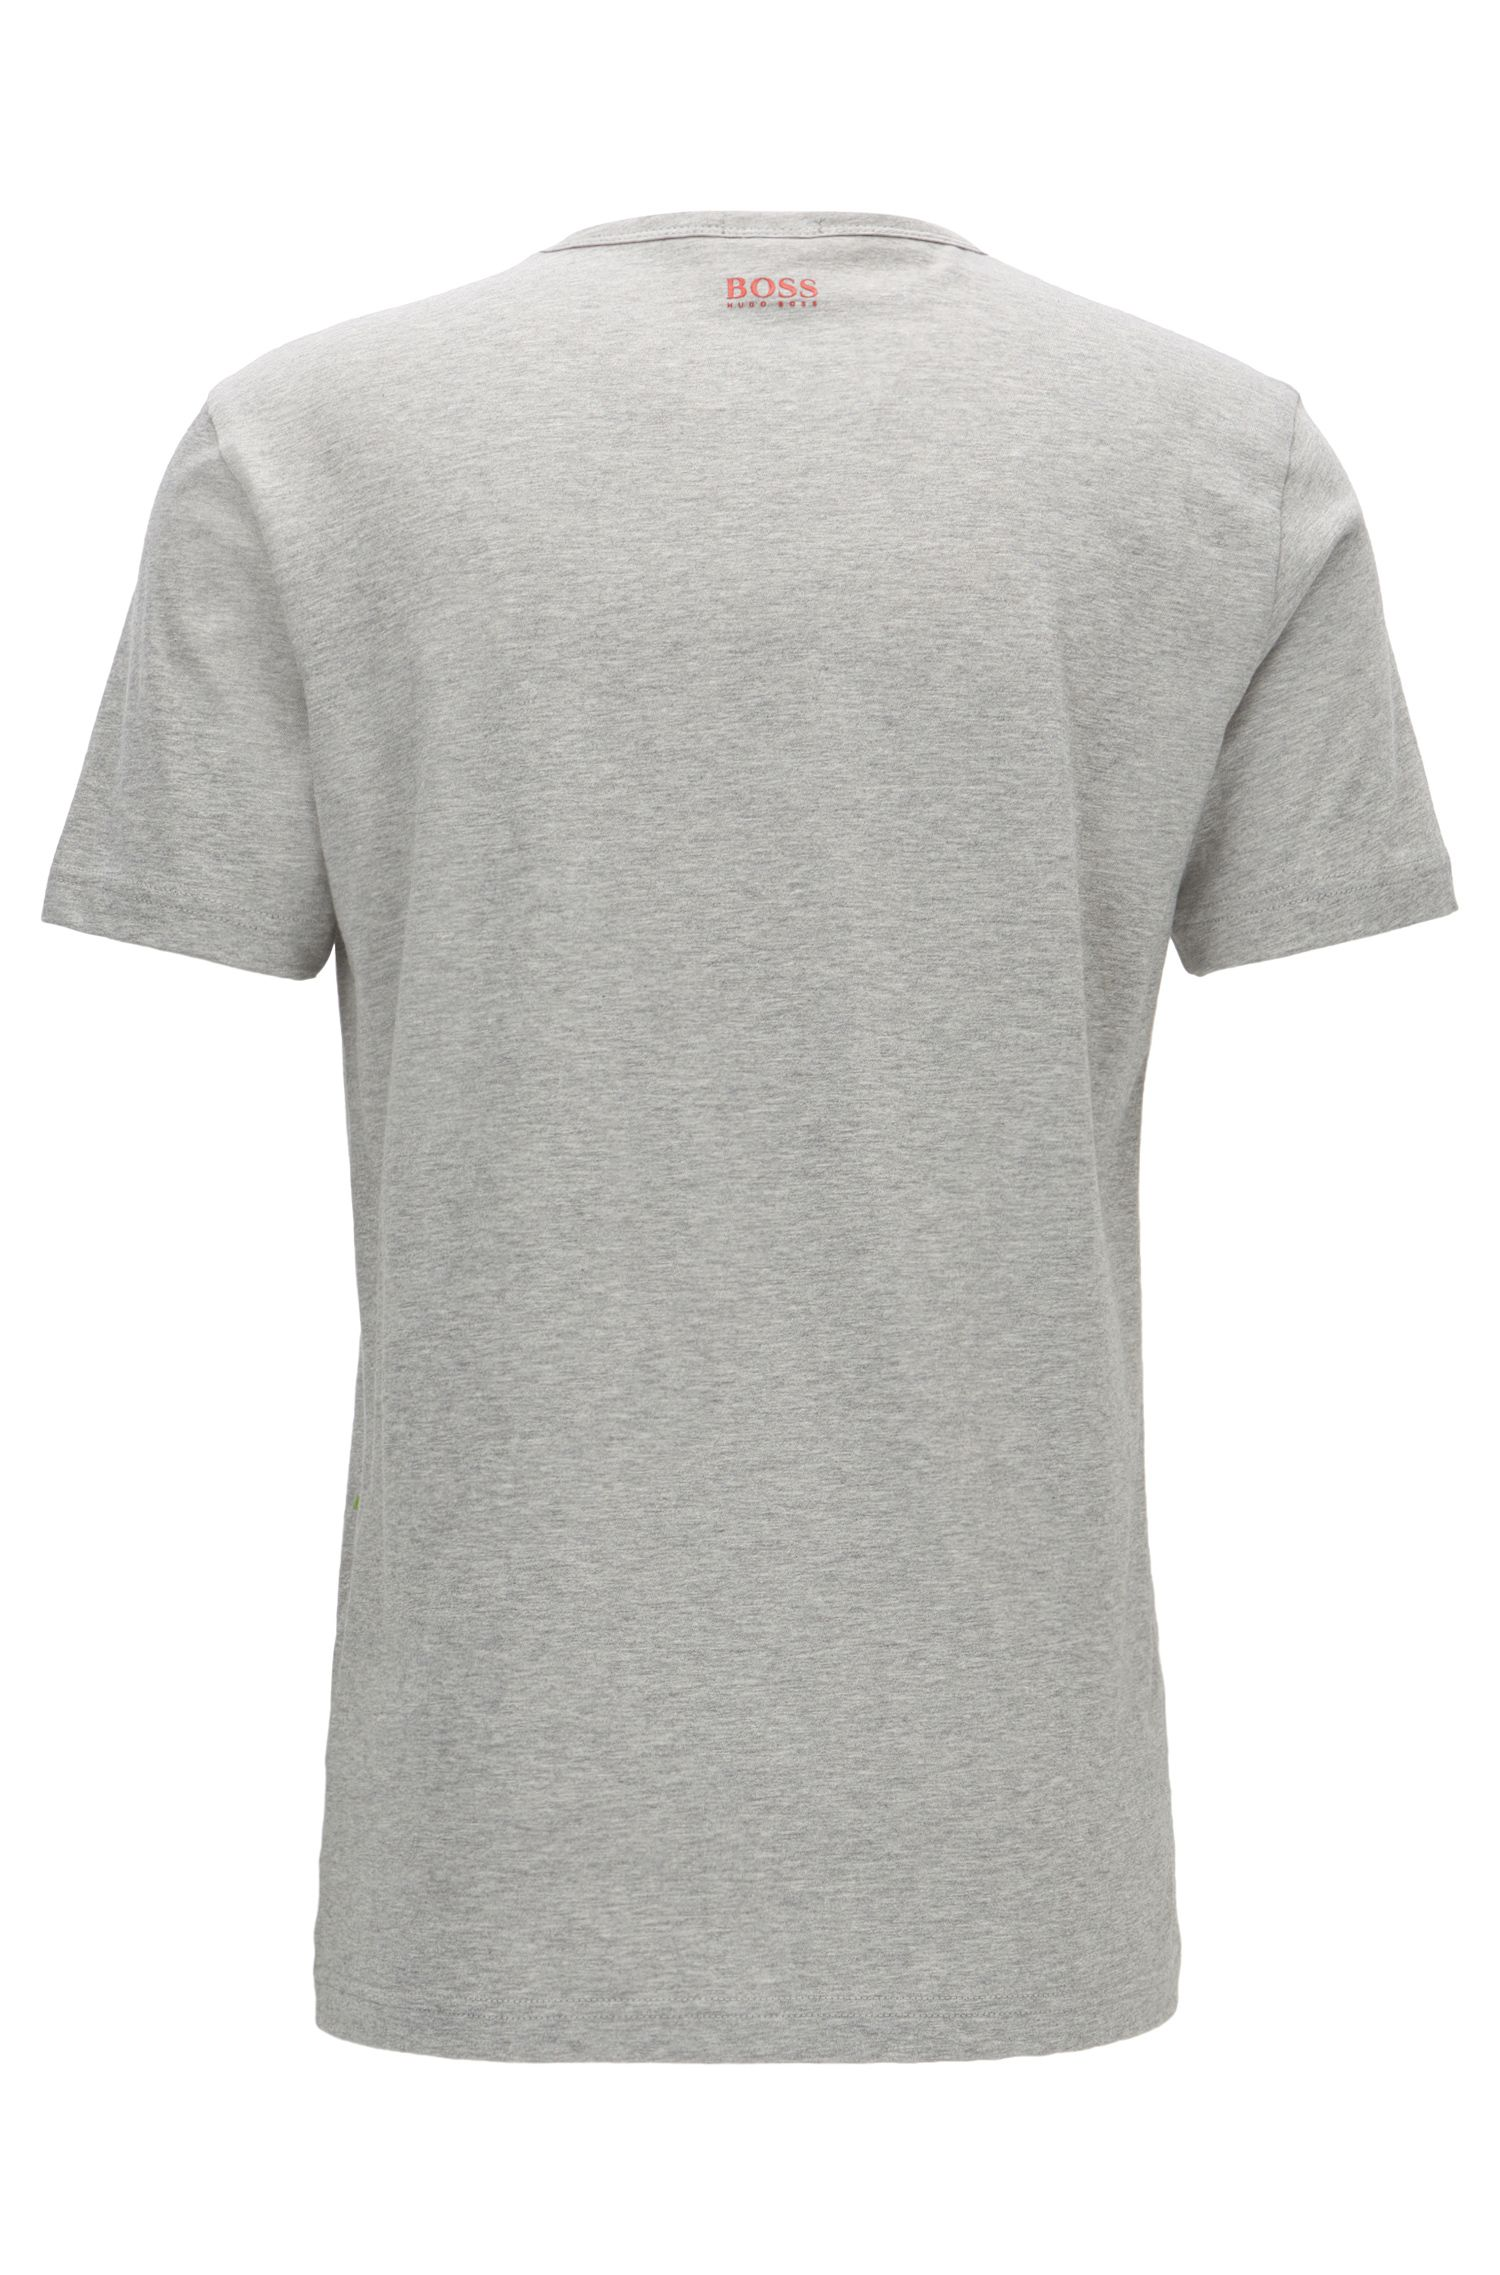 T-shirt Regular Fit en coton avec logo